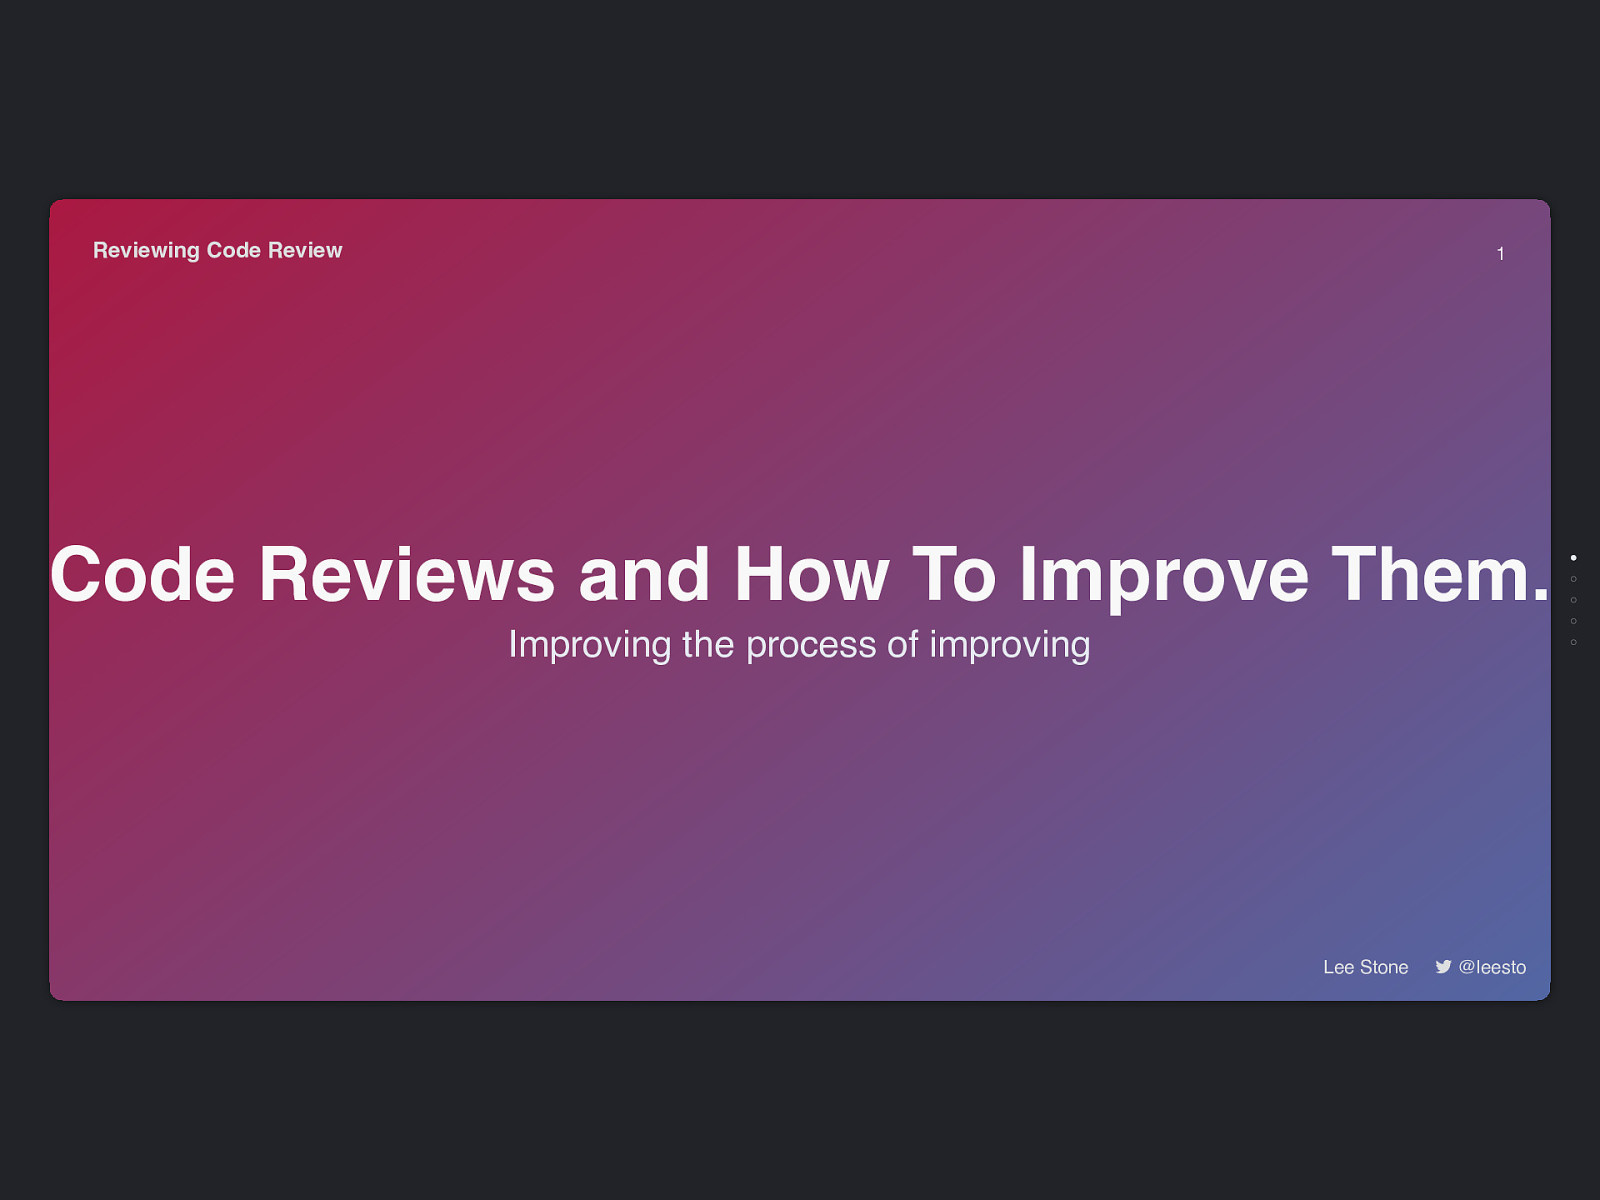 Code reviews and how to improve them